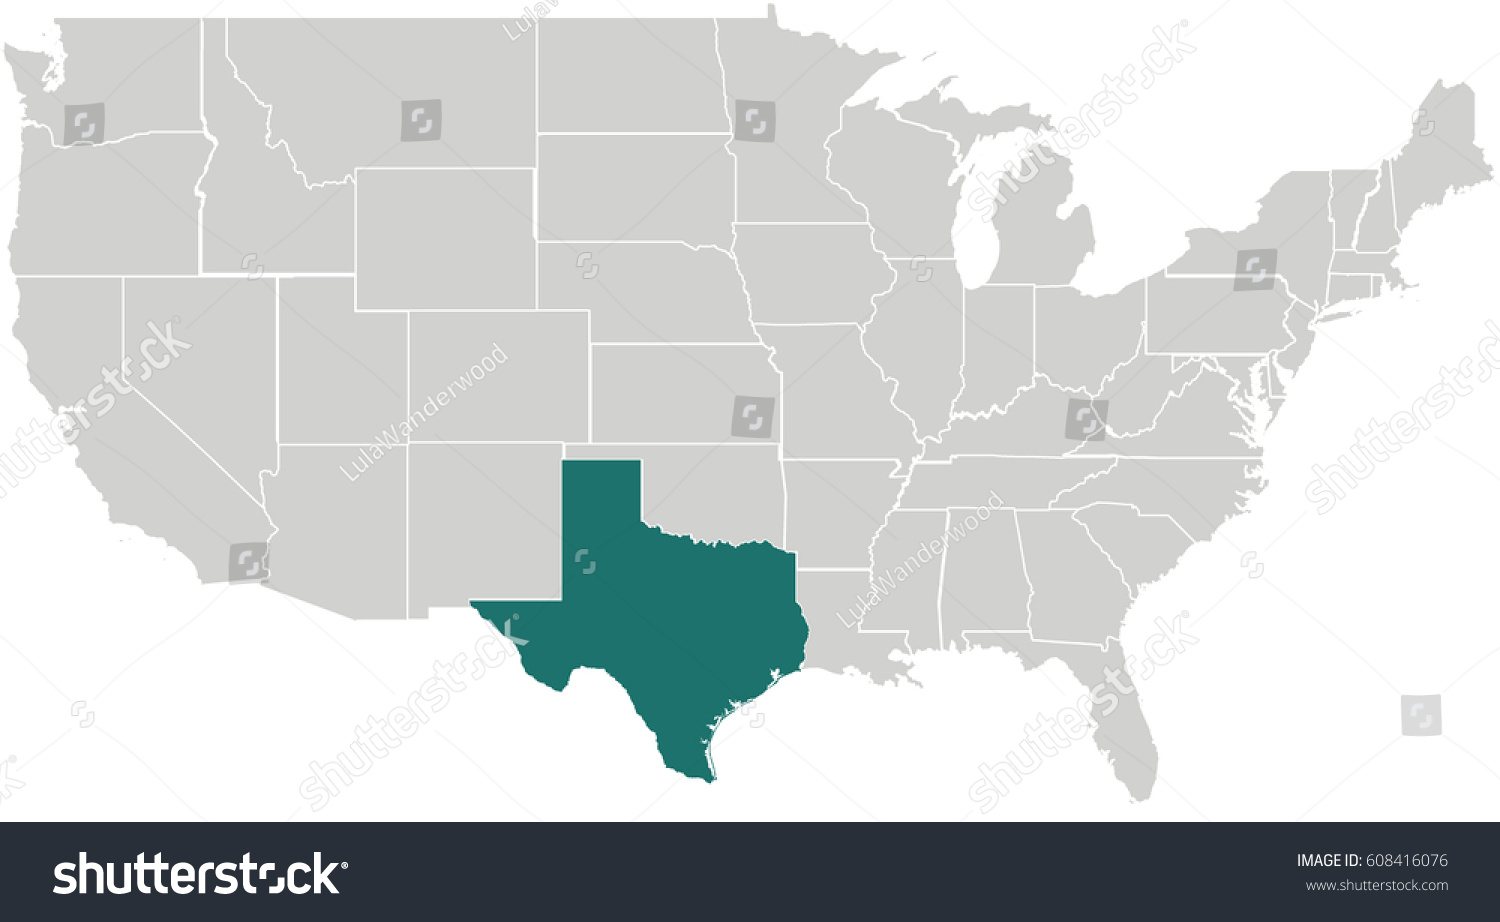 Map United States Texas Highlighted Stock Vector 608416076 ...